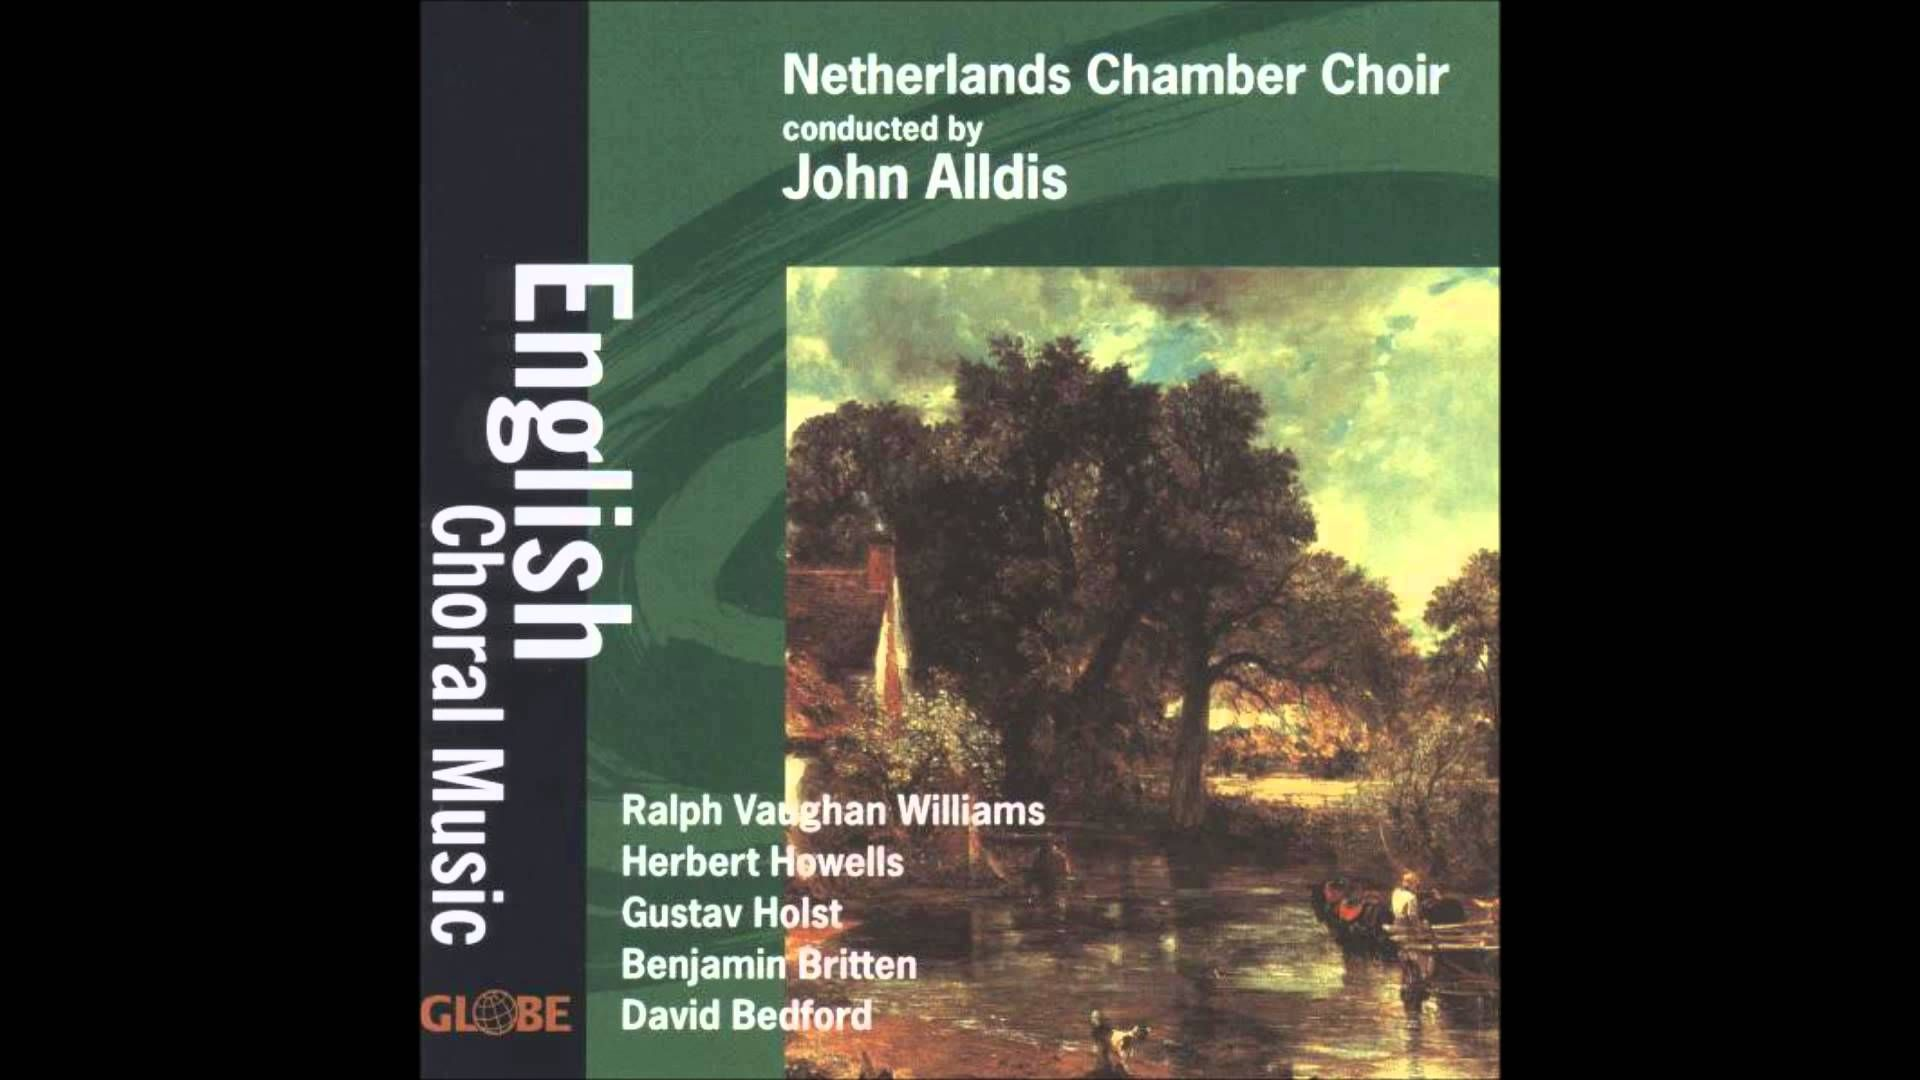 Performer: Netherlands Chamber Choir, with John Alldis Album: Williams, Howells, Holst, Britten, and Bedford: English Choral Music (1997) Composer: Ralph Vau...